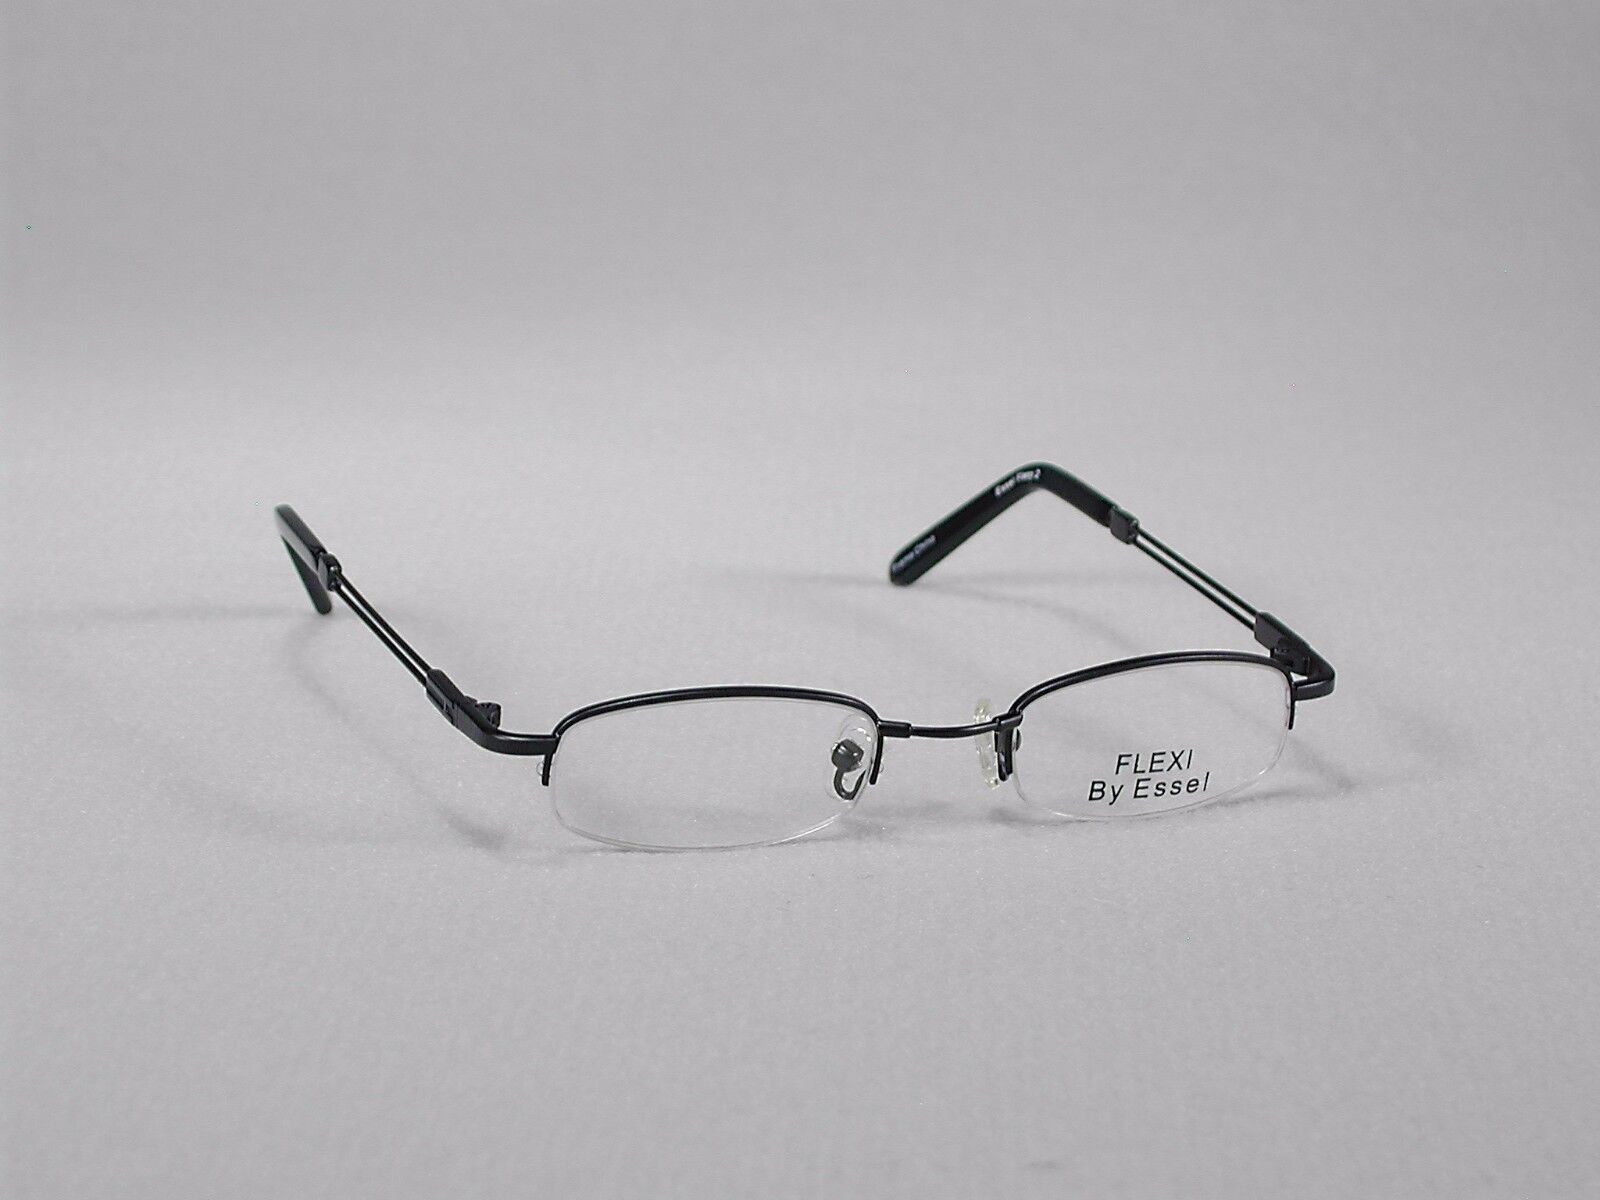 CHILDRENS EYEGLASS FRAMES Glasses Kid Brown Girls Boys Half-Rim Semi ...